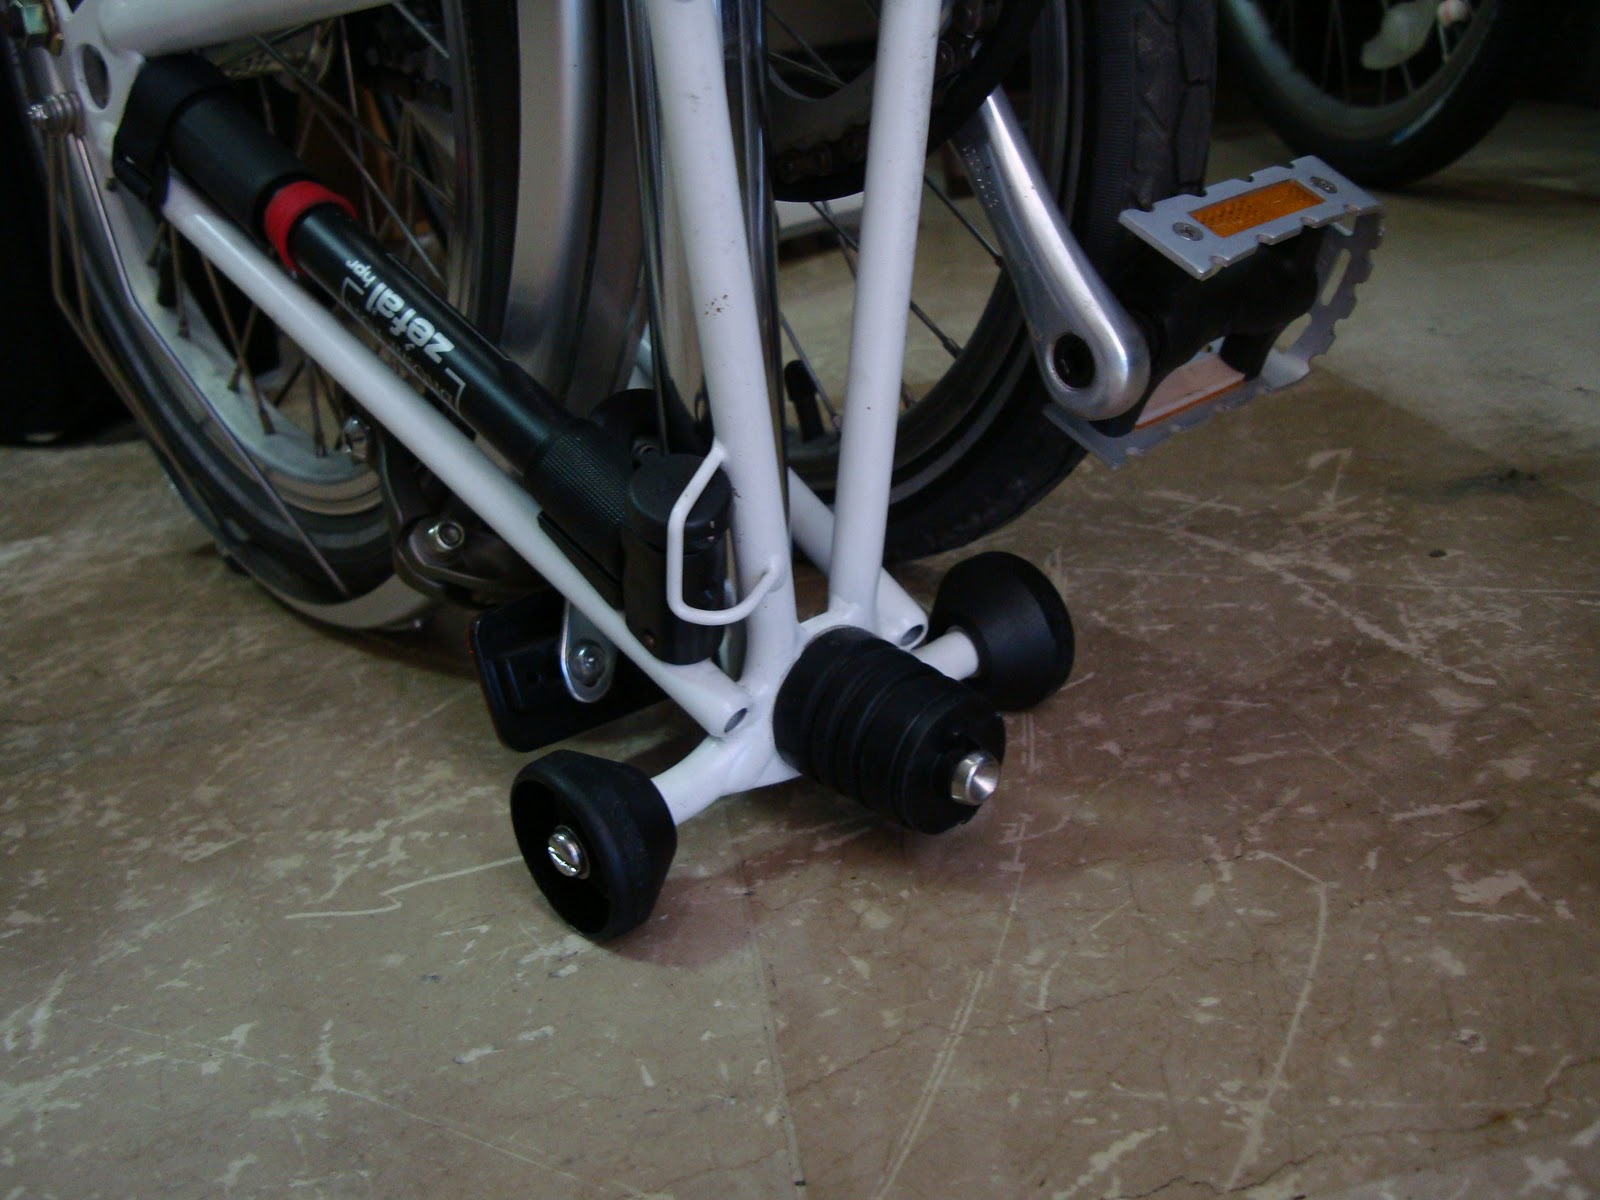 Riding a folding bike around Manila From caster wheels to in line